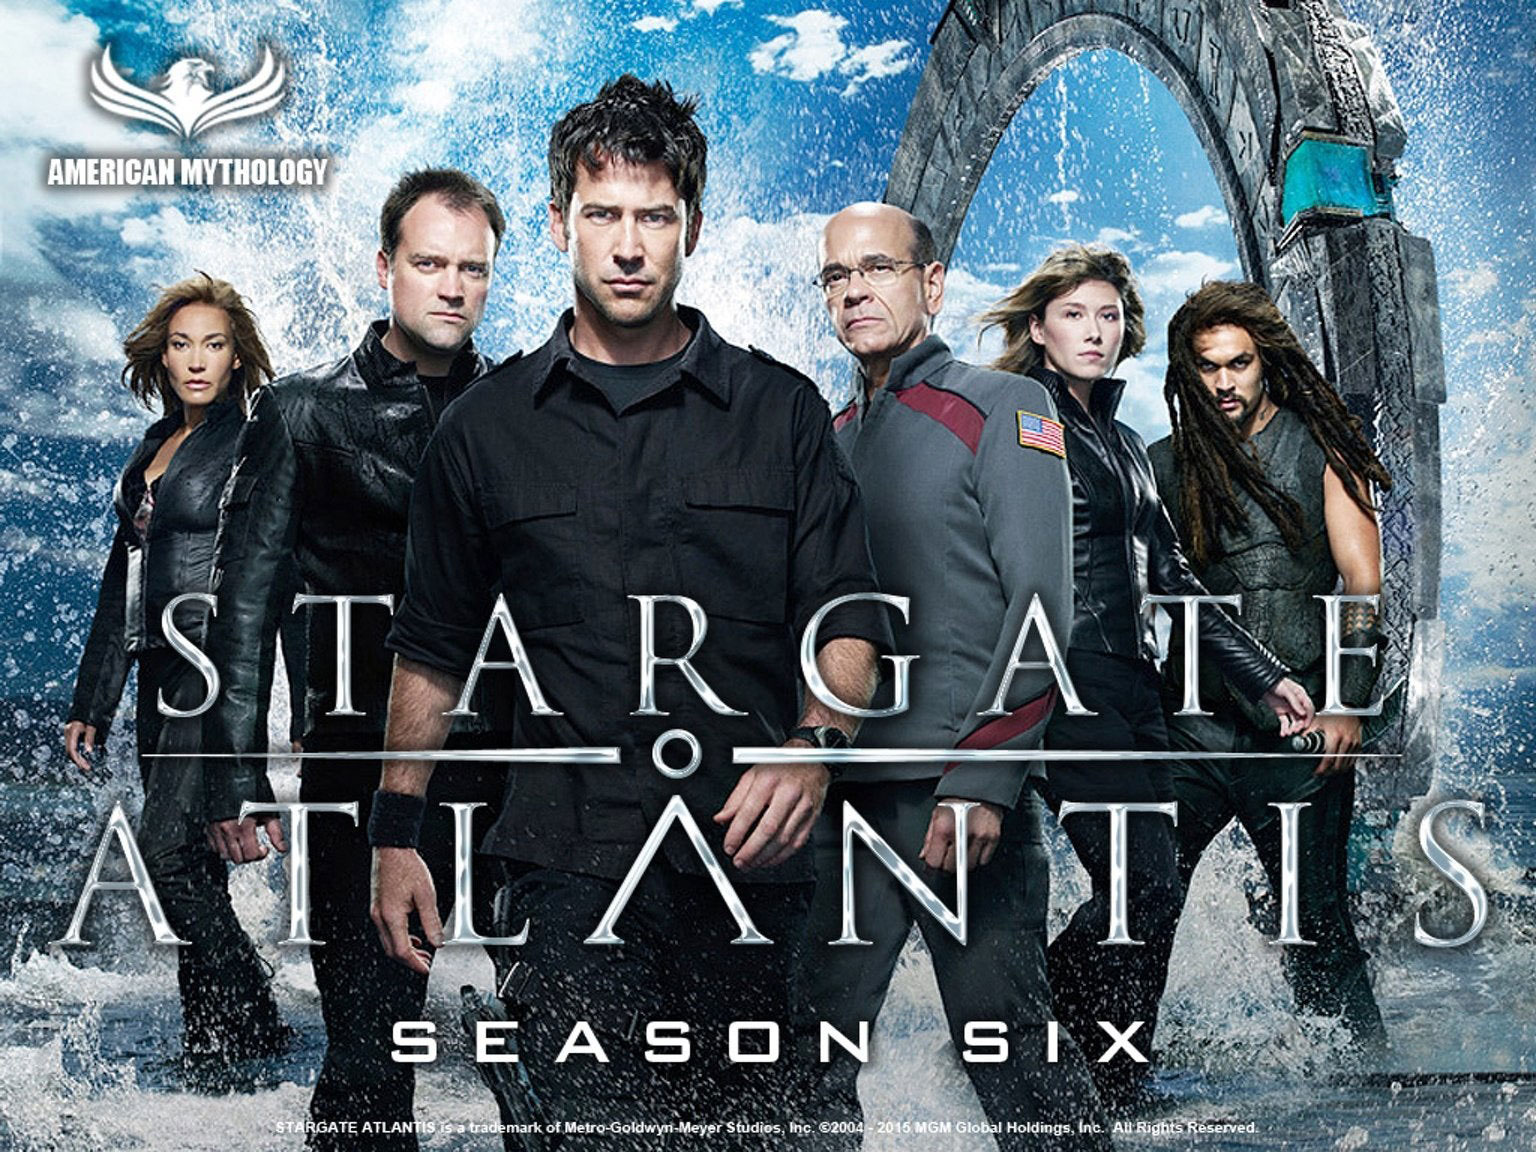 Stargate Atlantis season 6